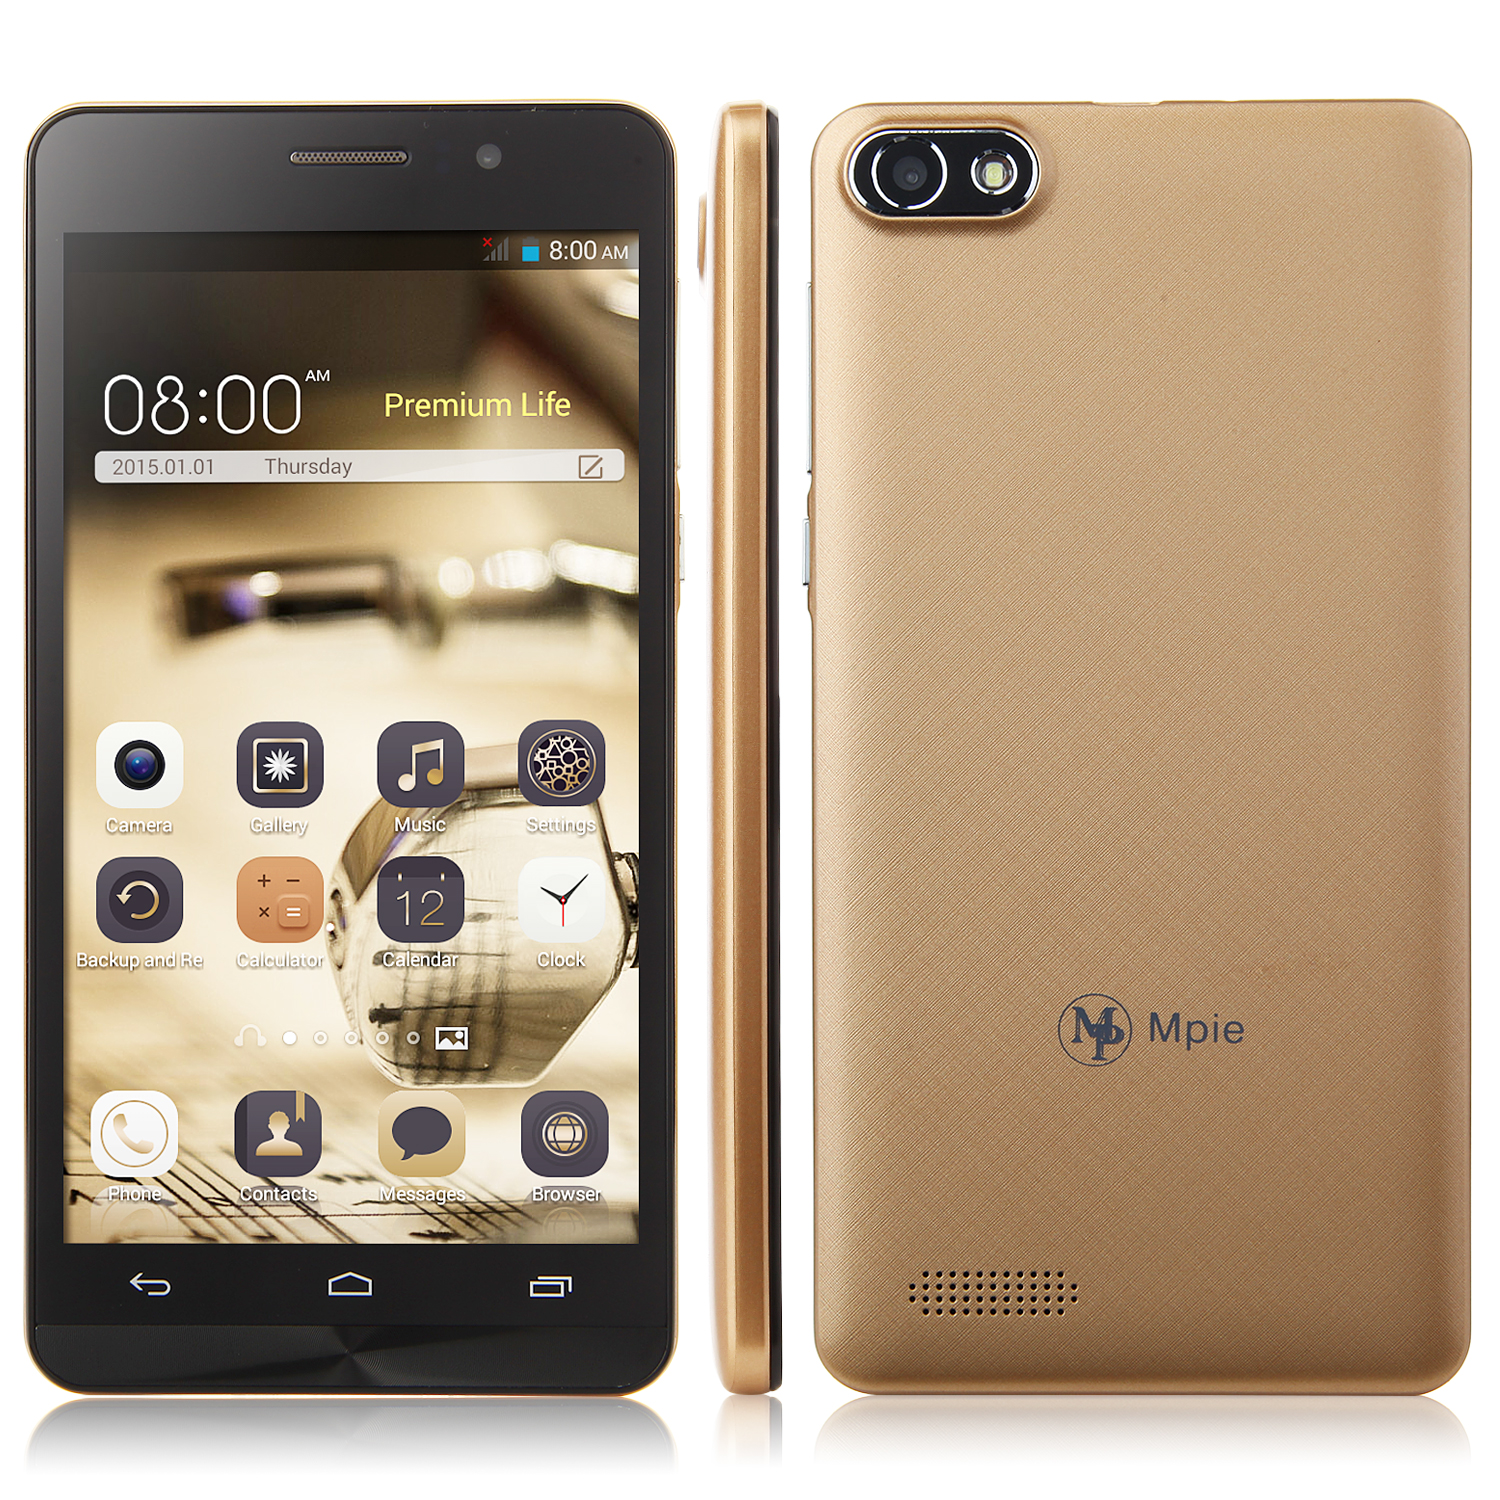 Tengda Z6 Smartphone Android 4.4 MTK6572W 5.5 Inch QHD Screen Smart Wake Gold